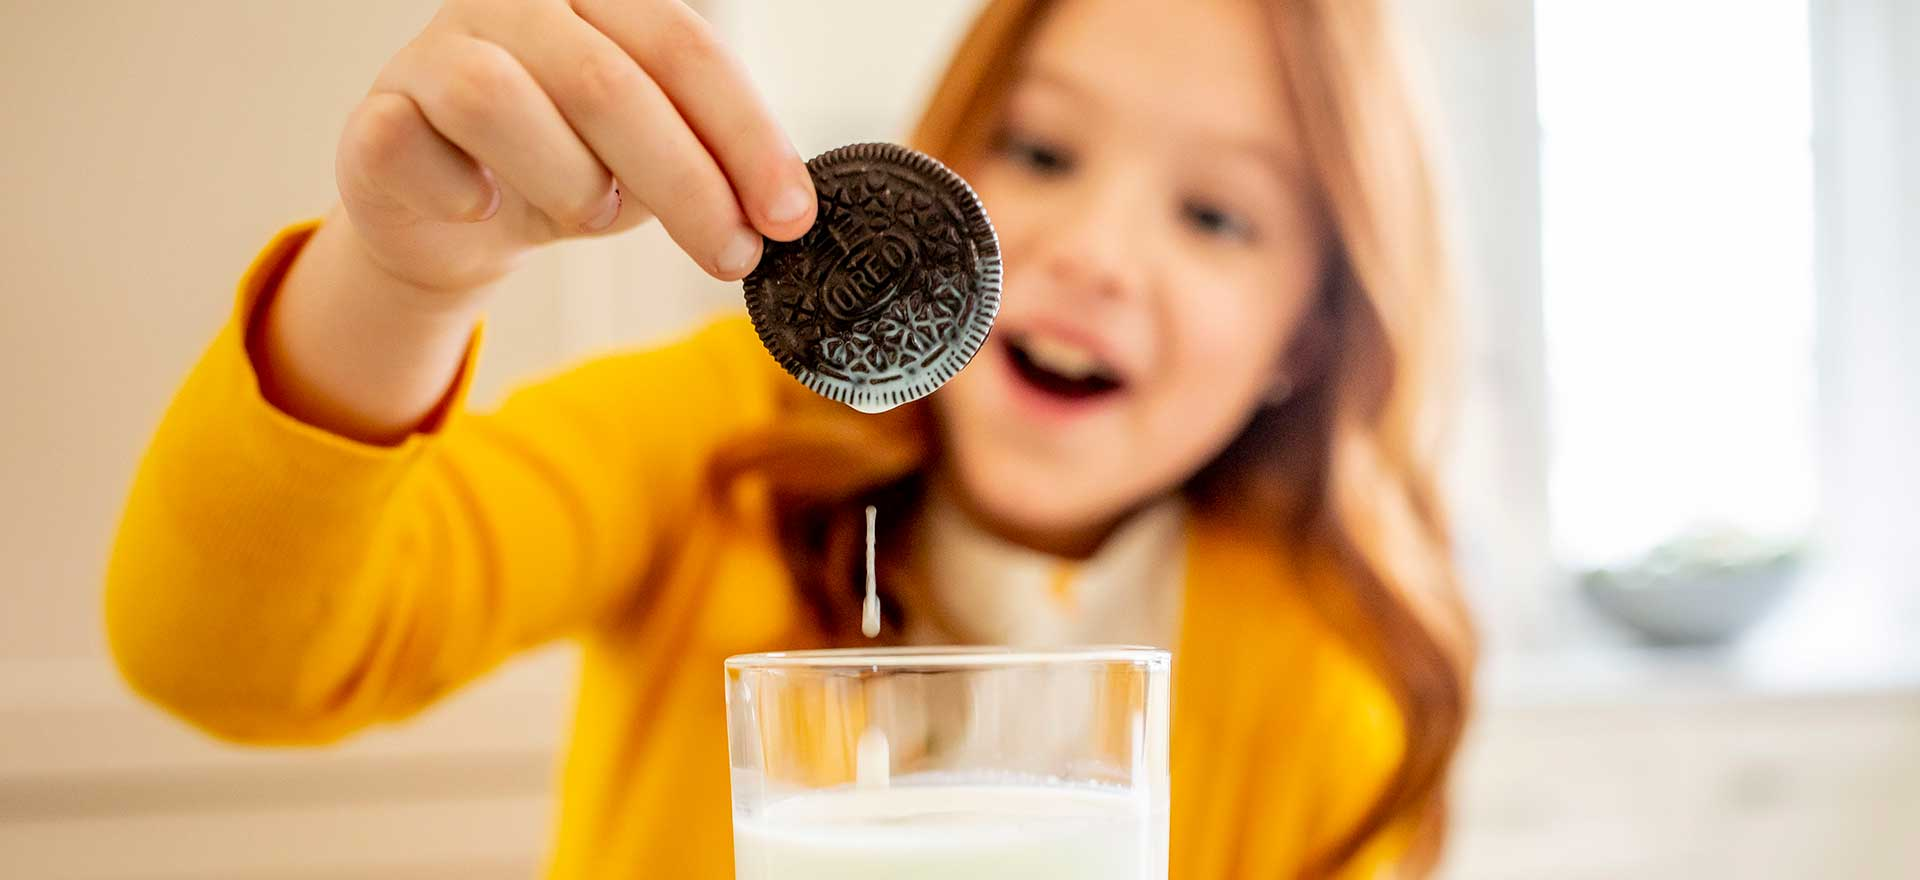 Young girl excitedly dunking an Oreo cookie into milk.